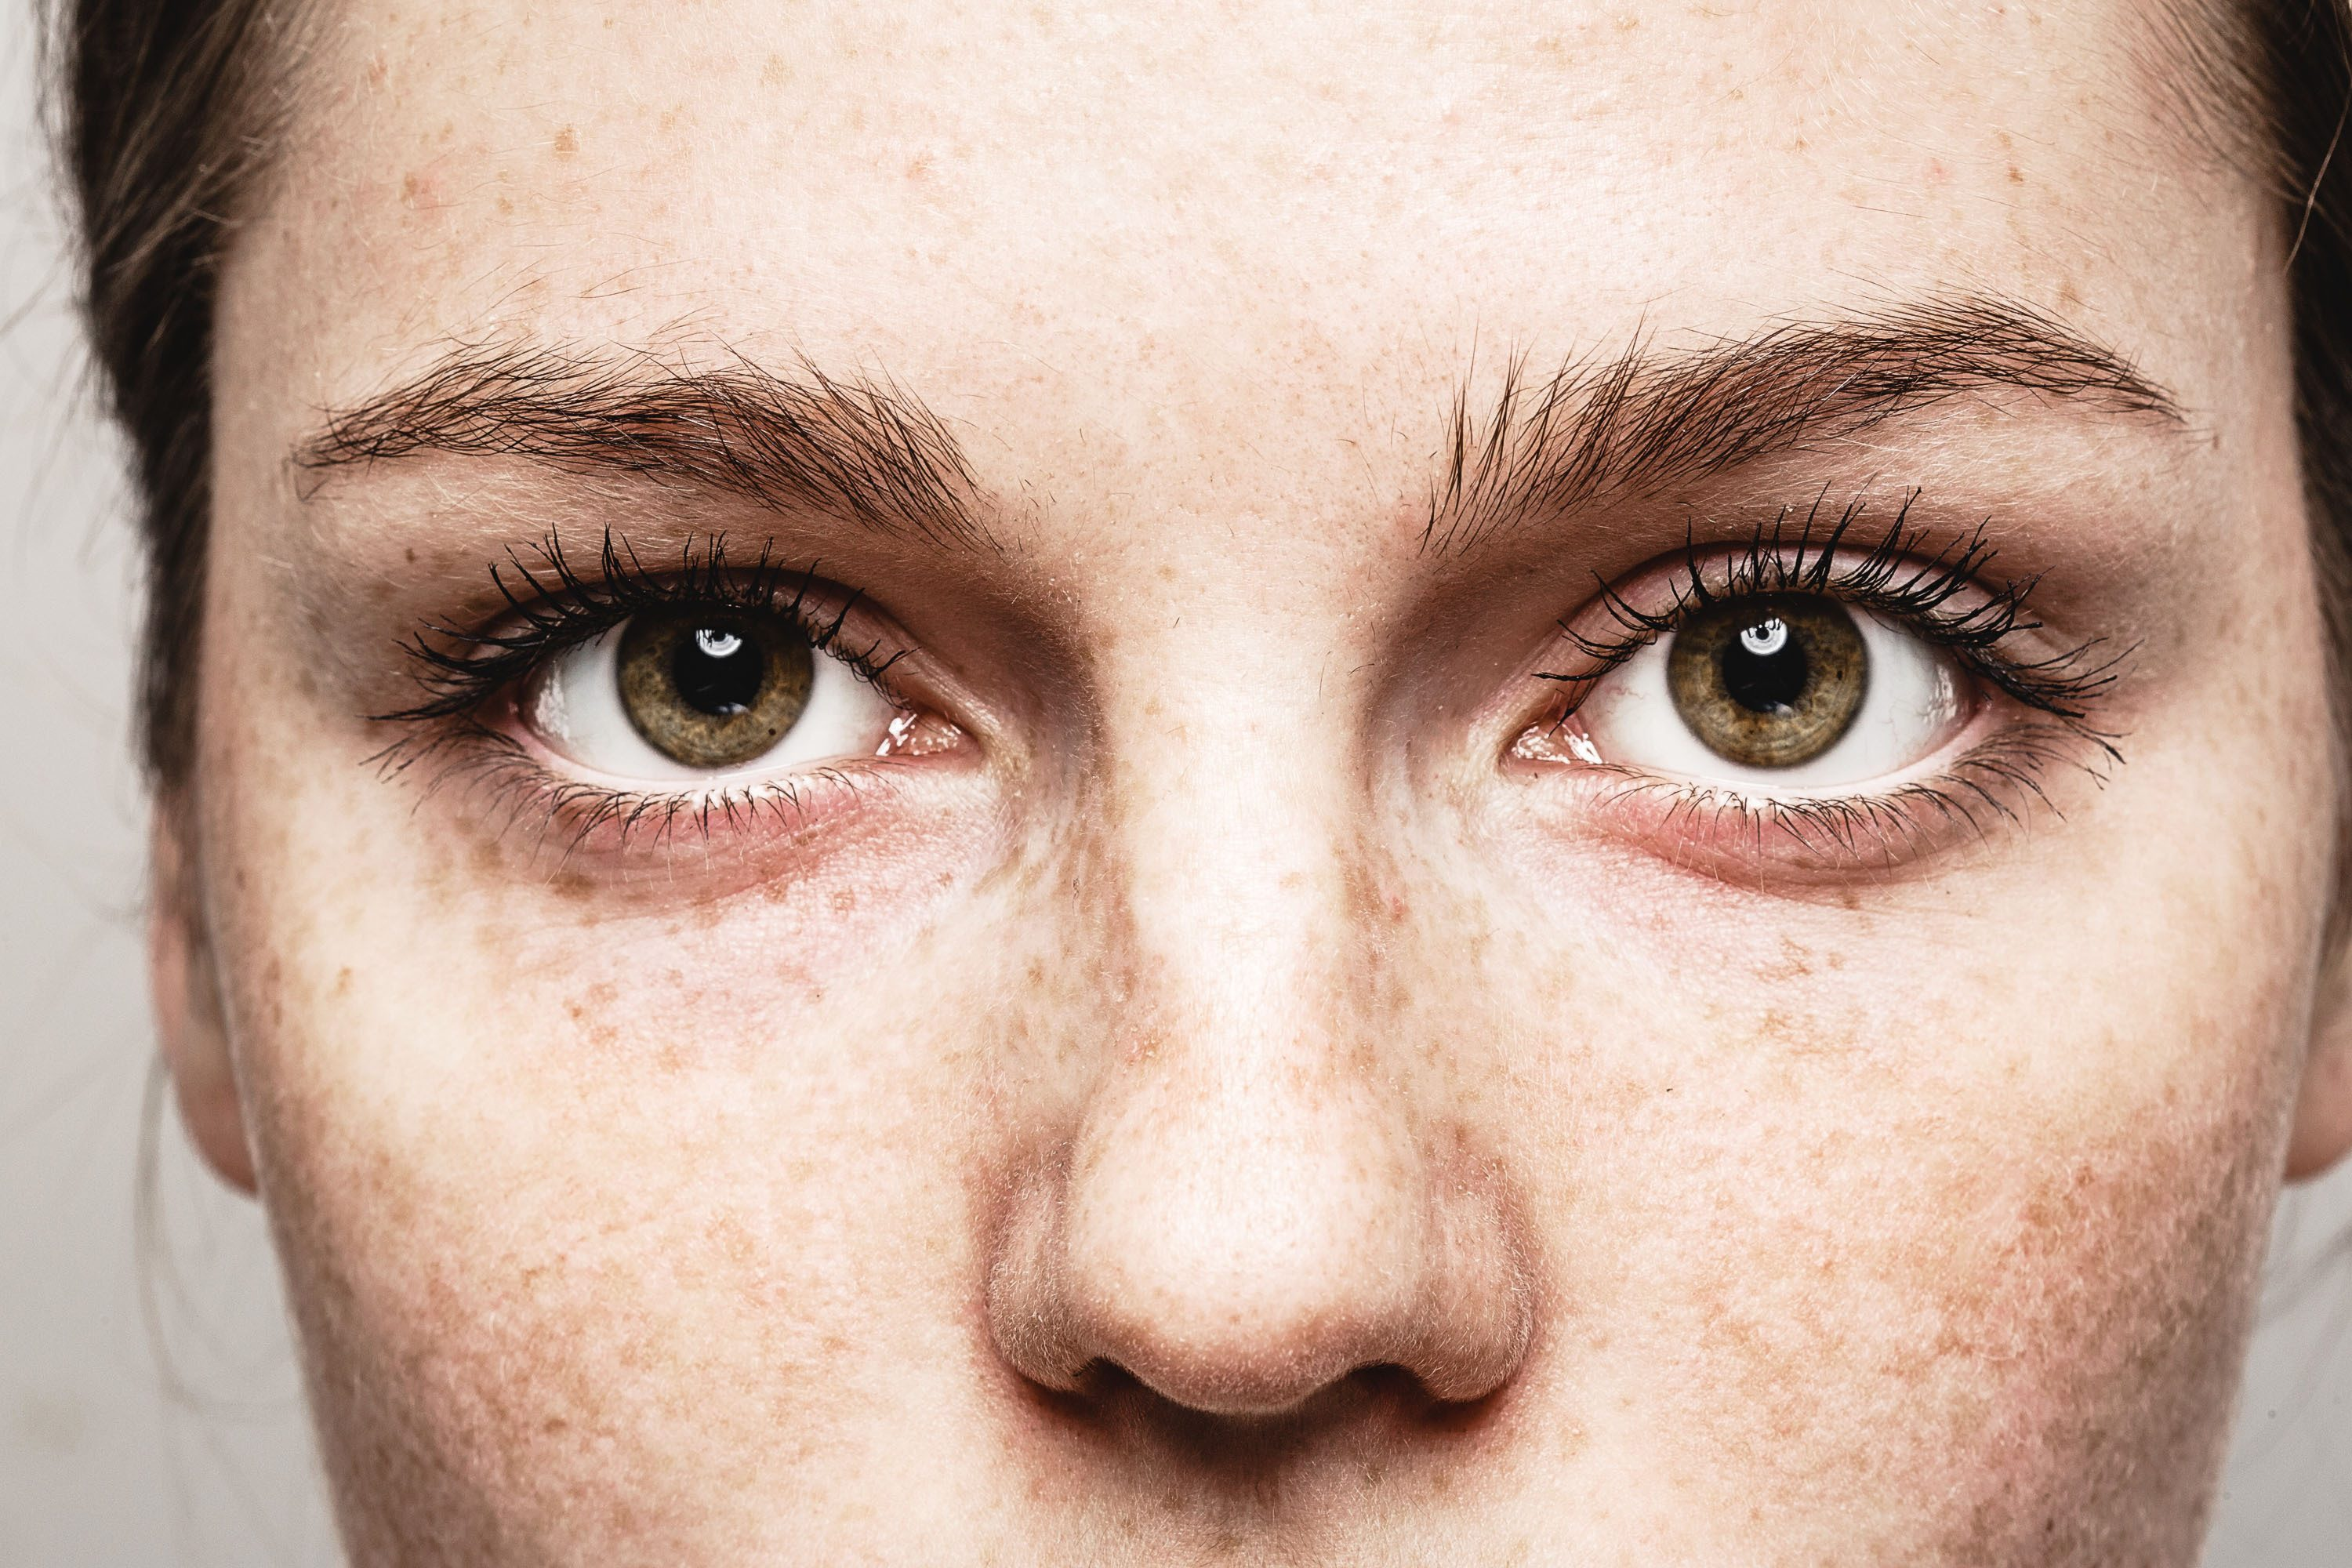 Close-up of freckles and eyes of woman